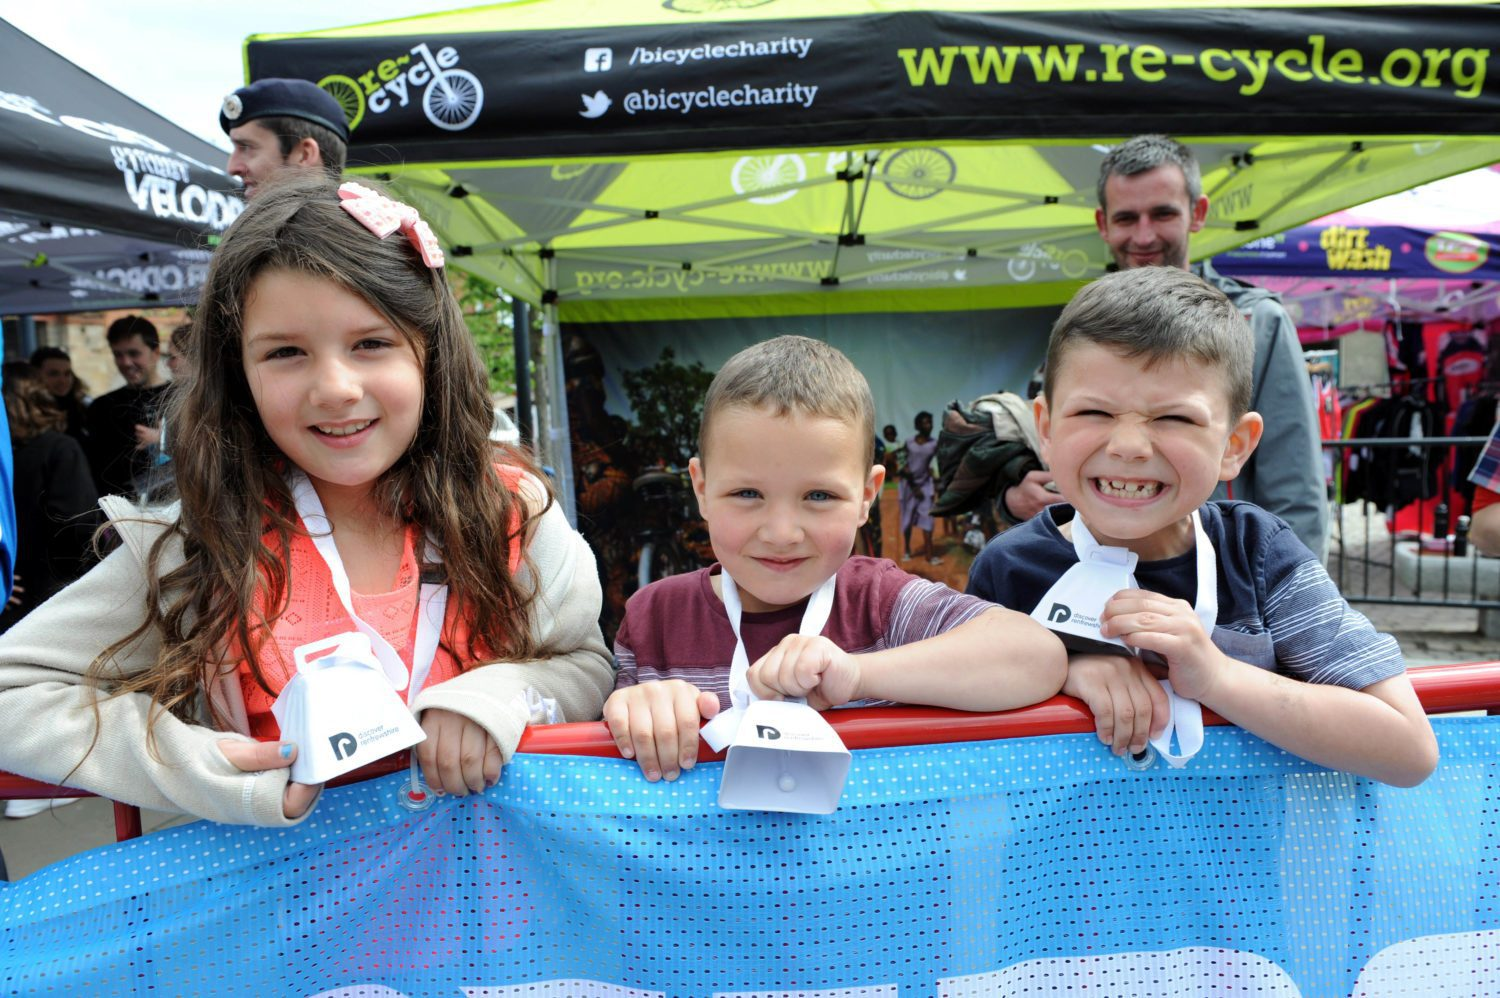 Velodrome 31 crowd ringing cow bells L-R Caitlin 8, Seamus (5) and Ciaran (7) Murney from Johnstone.